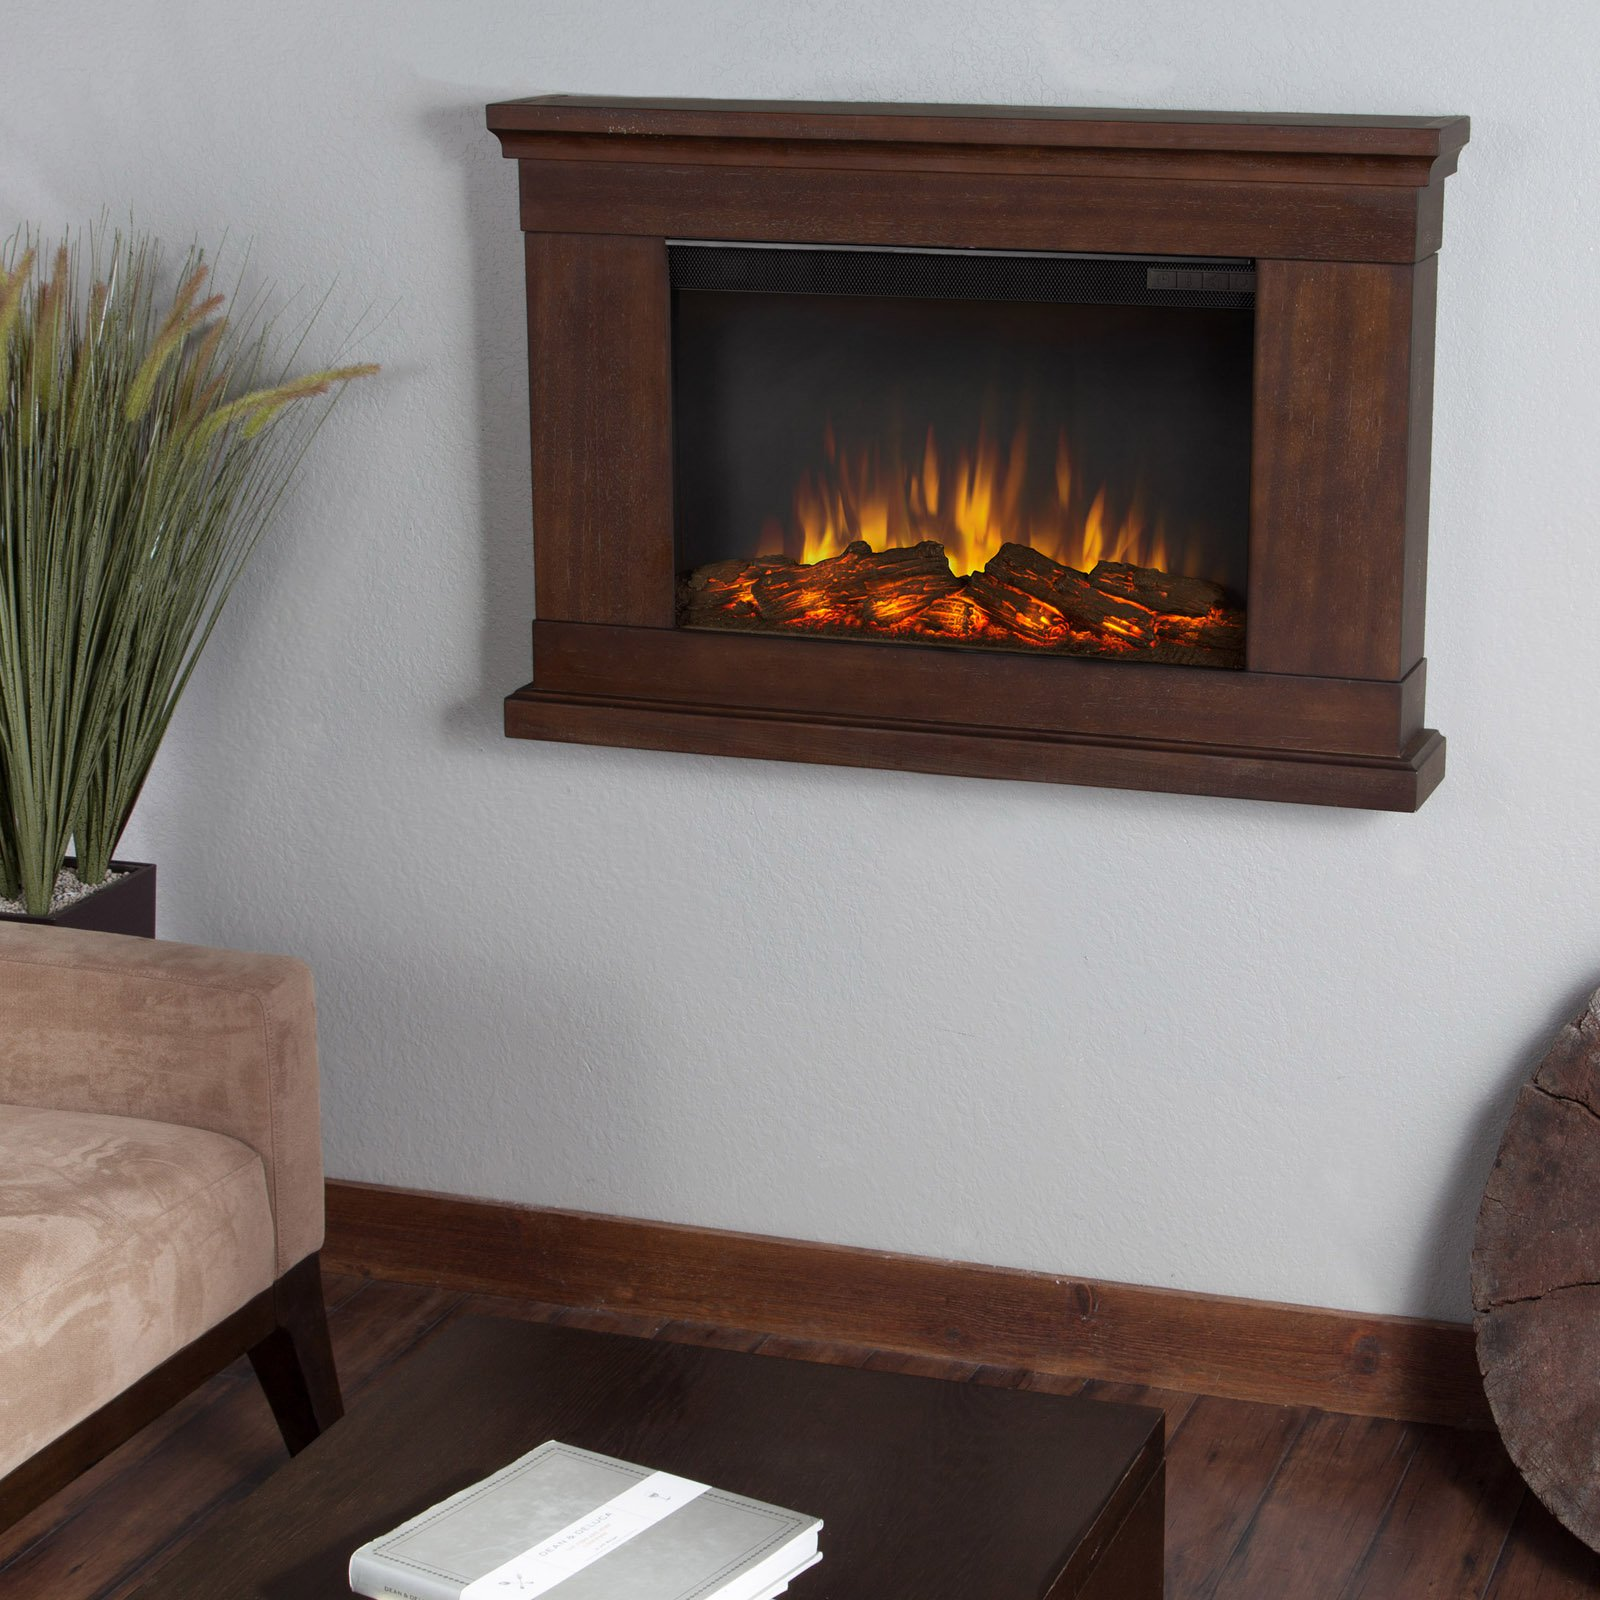 Real Flame Jackson Slim Line Wall Hung Electric Fireplace - Vintage Black Maple